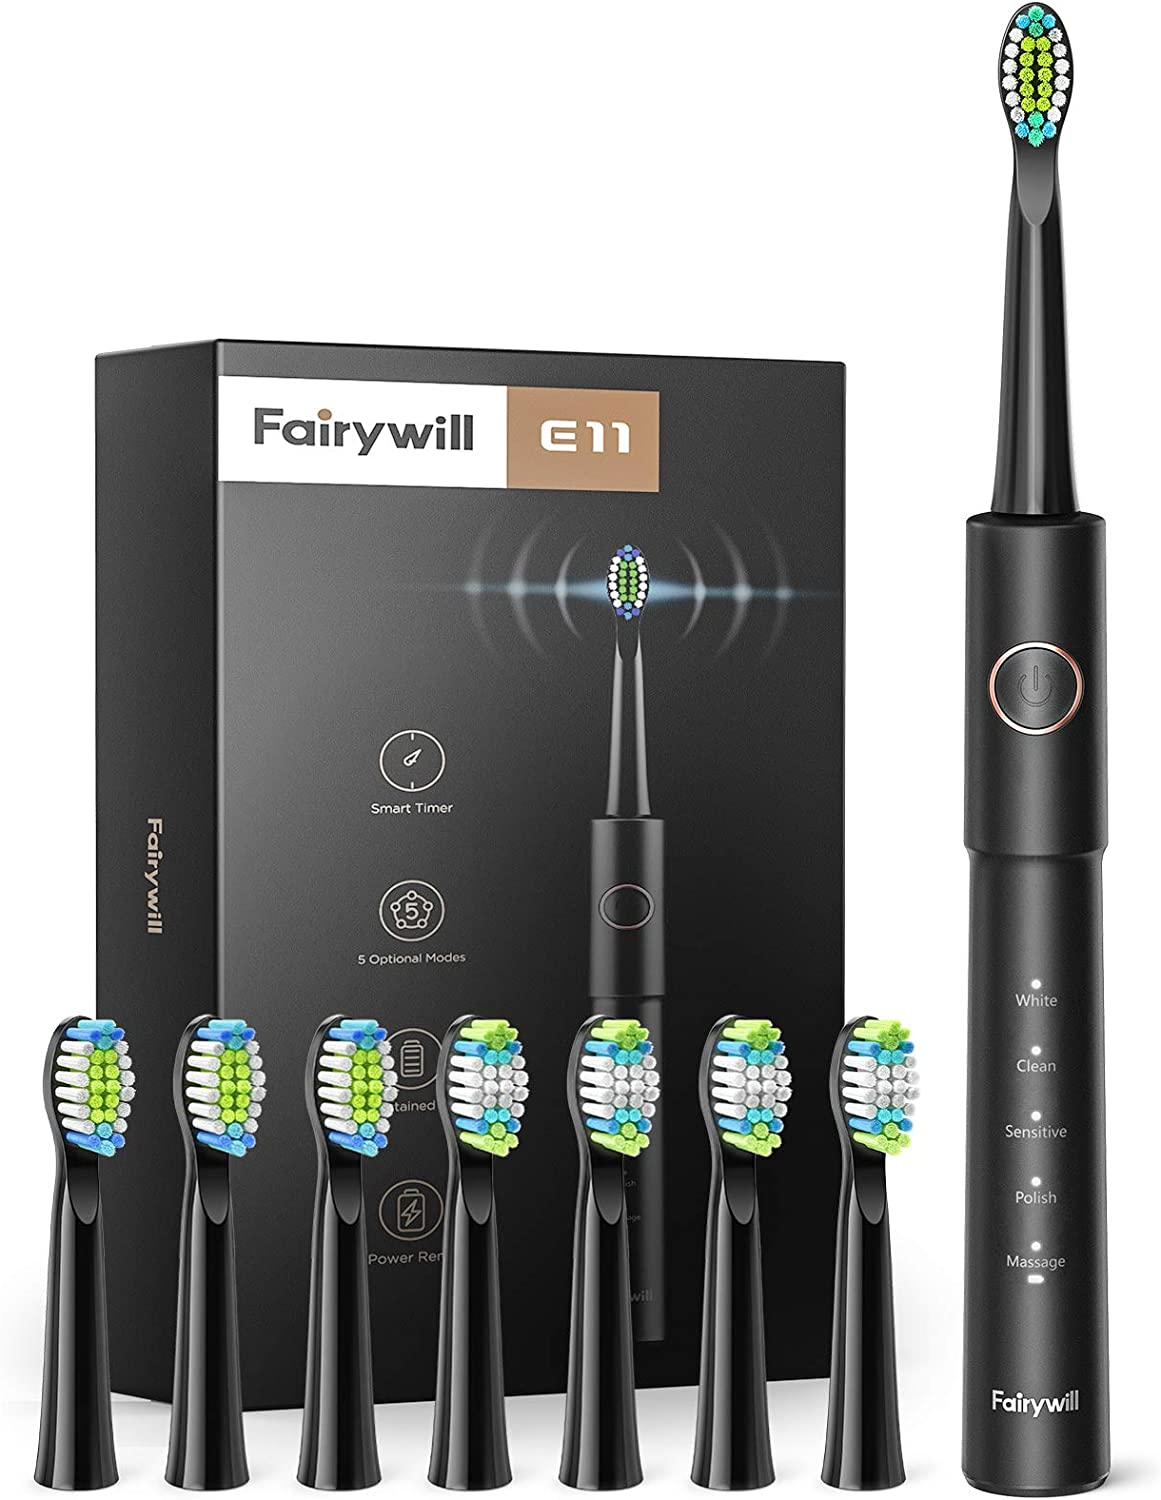 Fairywill Electric Toothbrush, Sonic Electric Toothbrush for Adults with 5 Modes 2 Hours Fast Charge